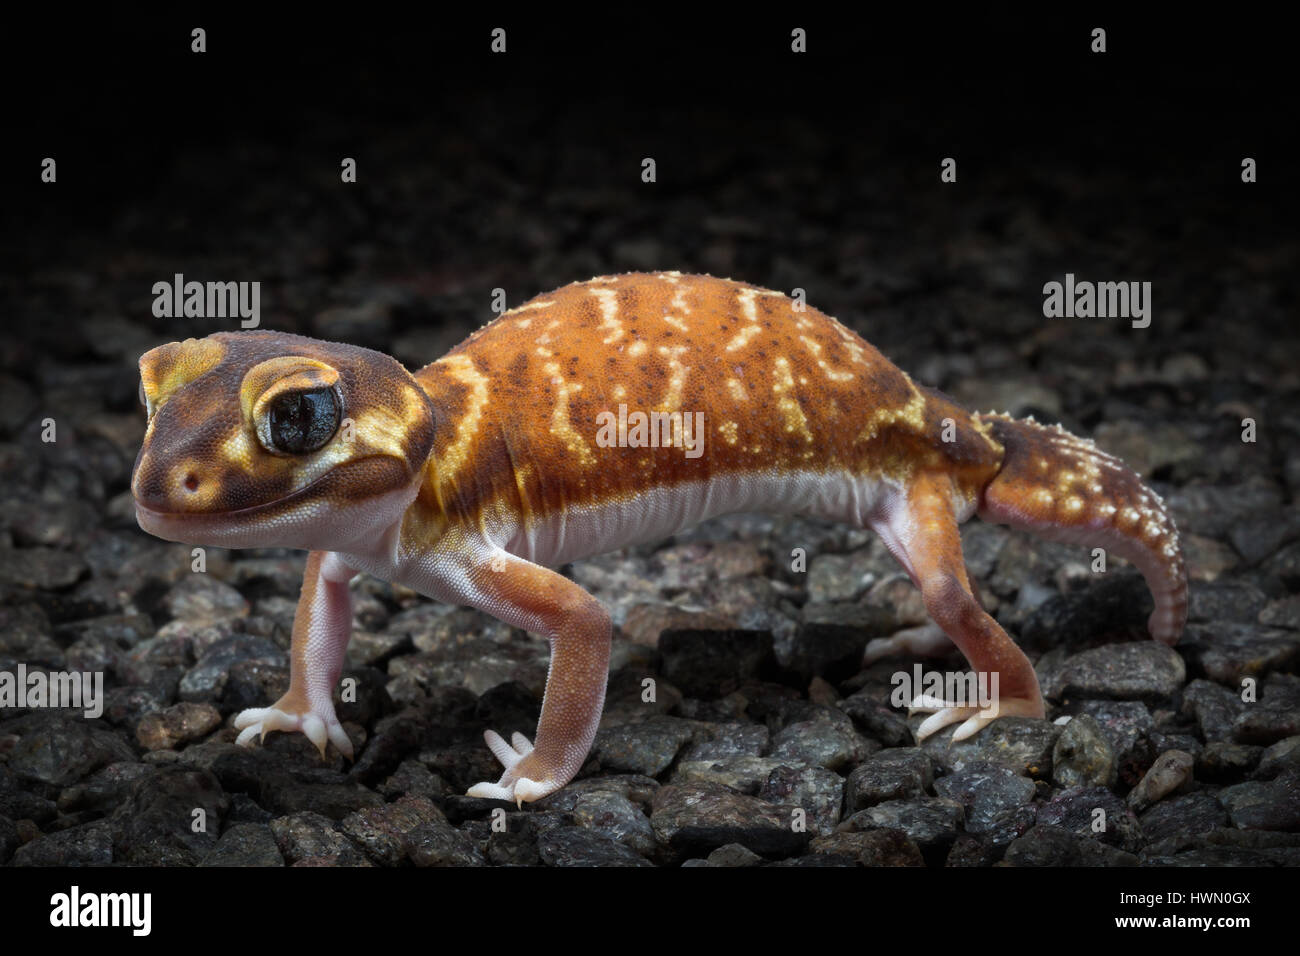 Smooth Knob-tailed Gecko (Nephrurus levis) - Stock Image